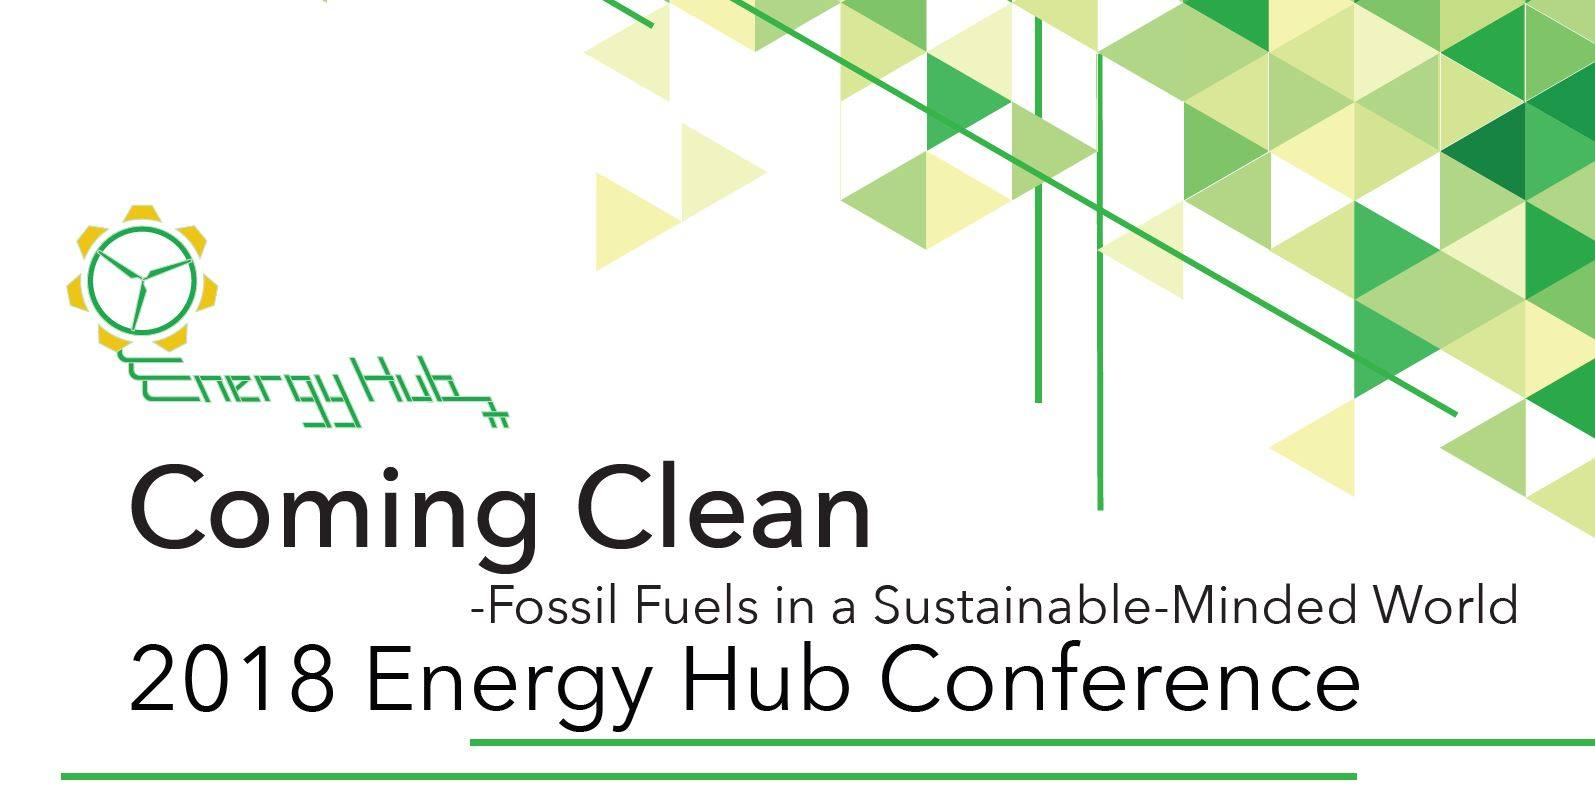 energy hub conference